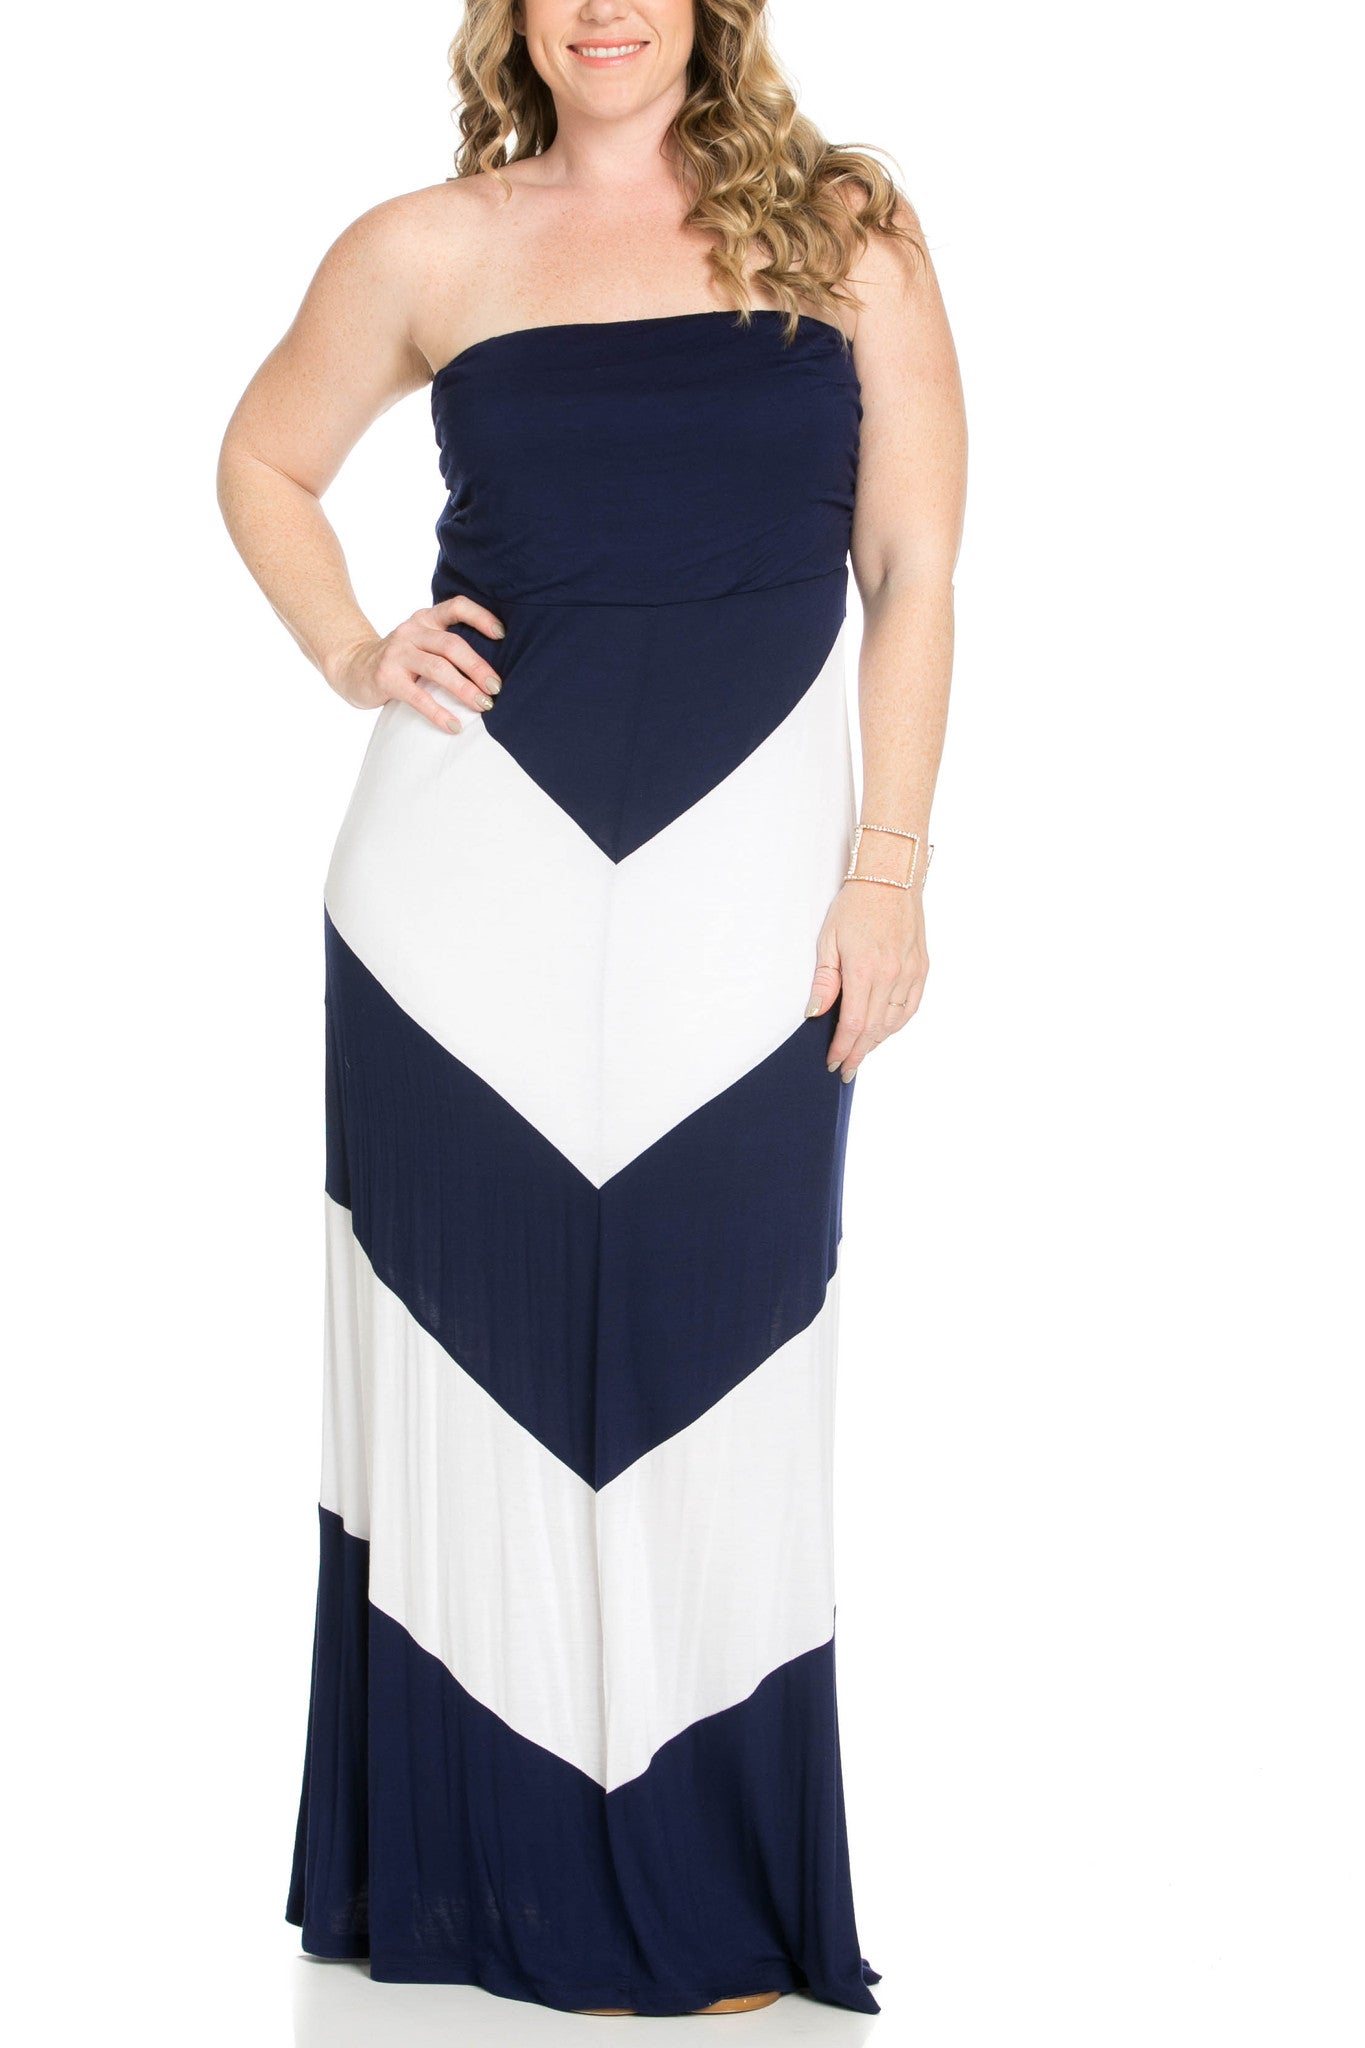 Strapless Long tube Dress Navy/White Cause You're Chevron - Dresses - My Yuccie - 7